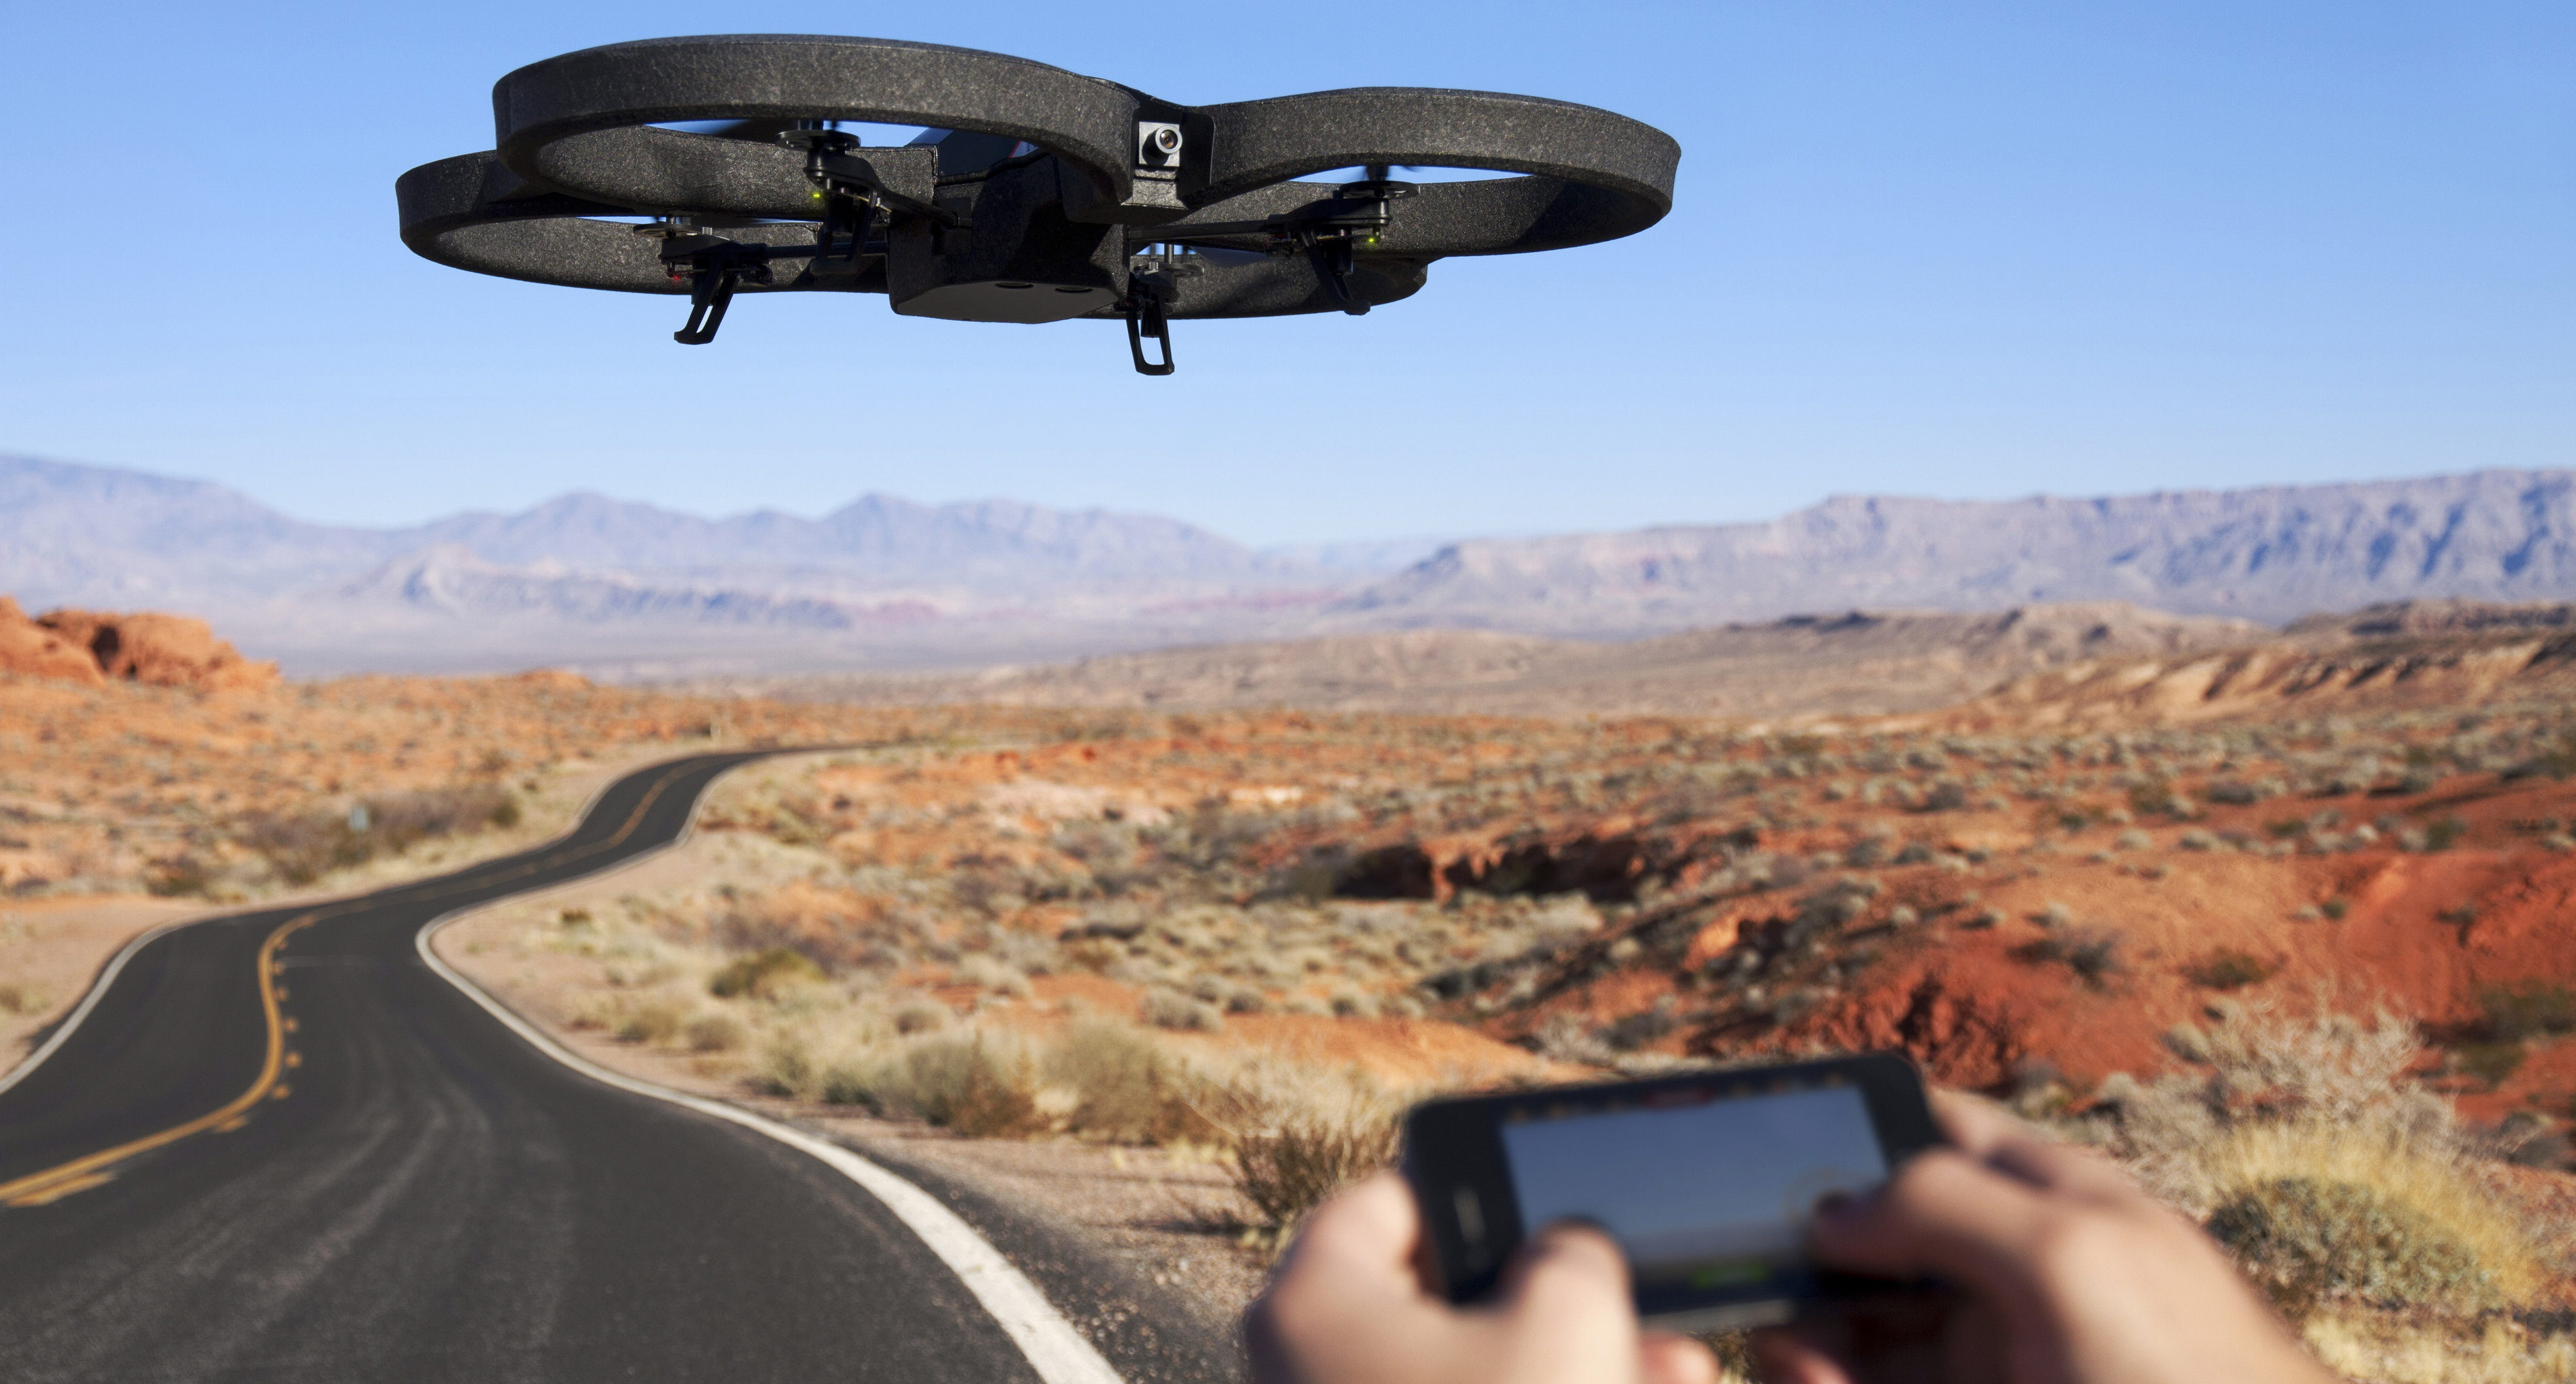 Drones: A buyer's guide